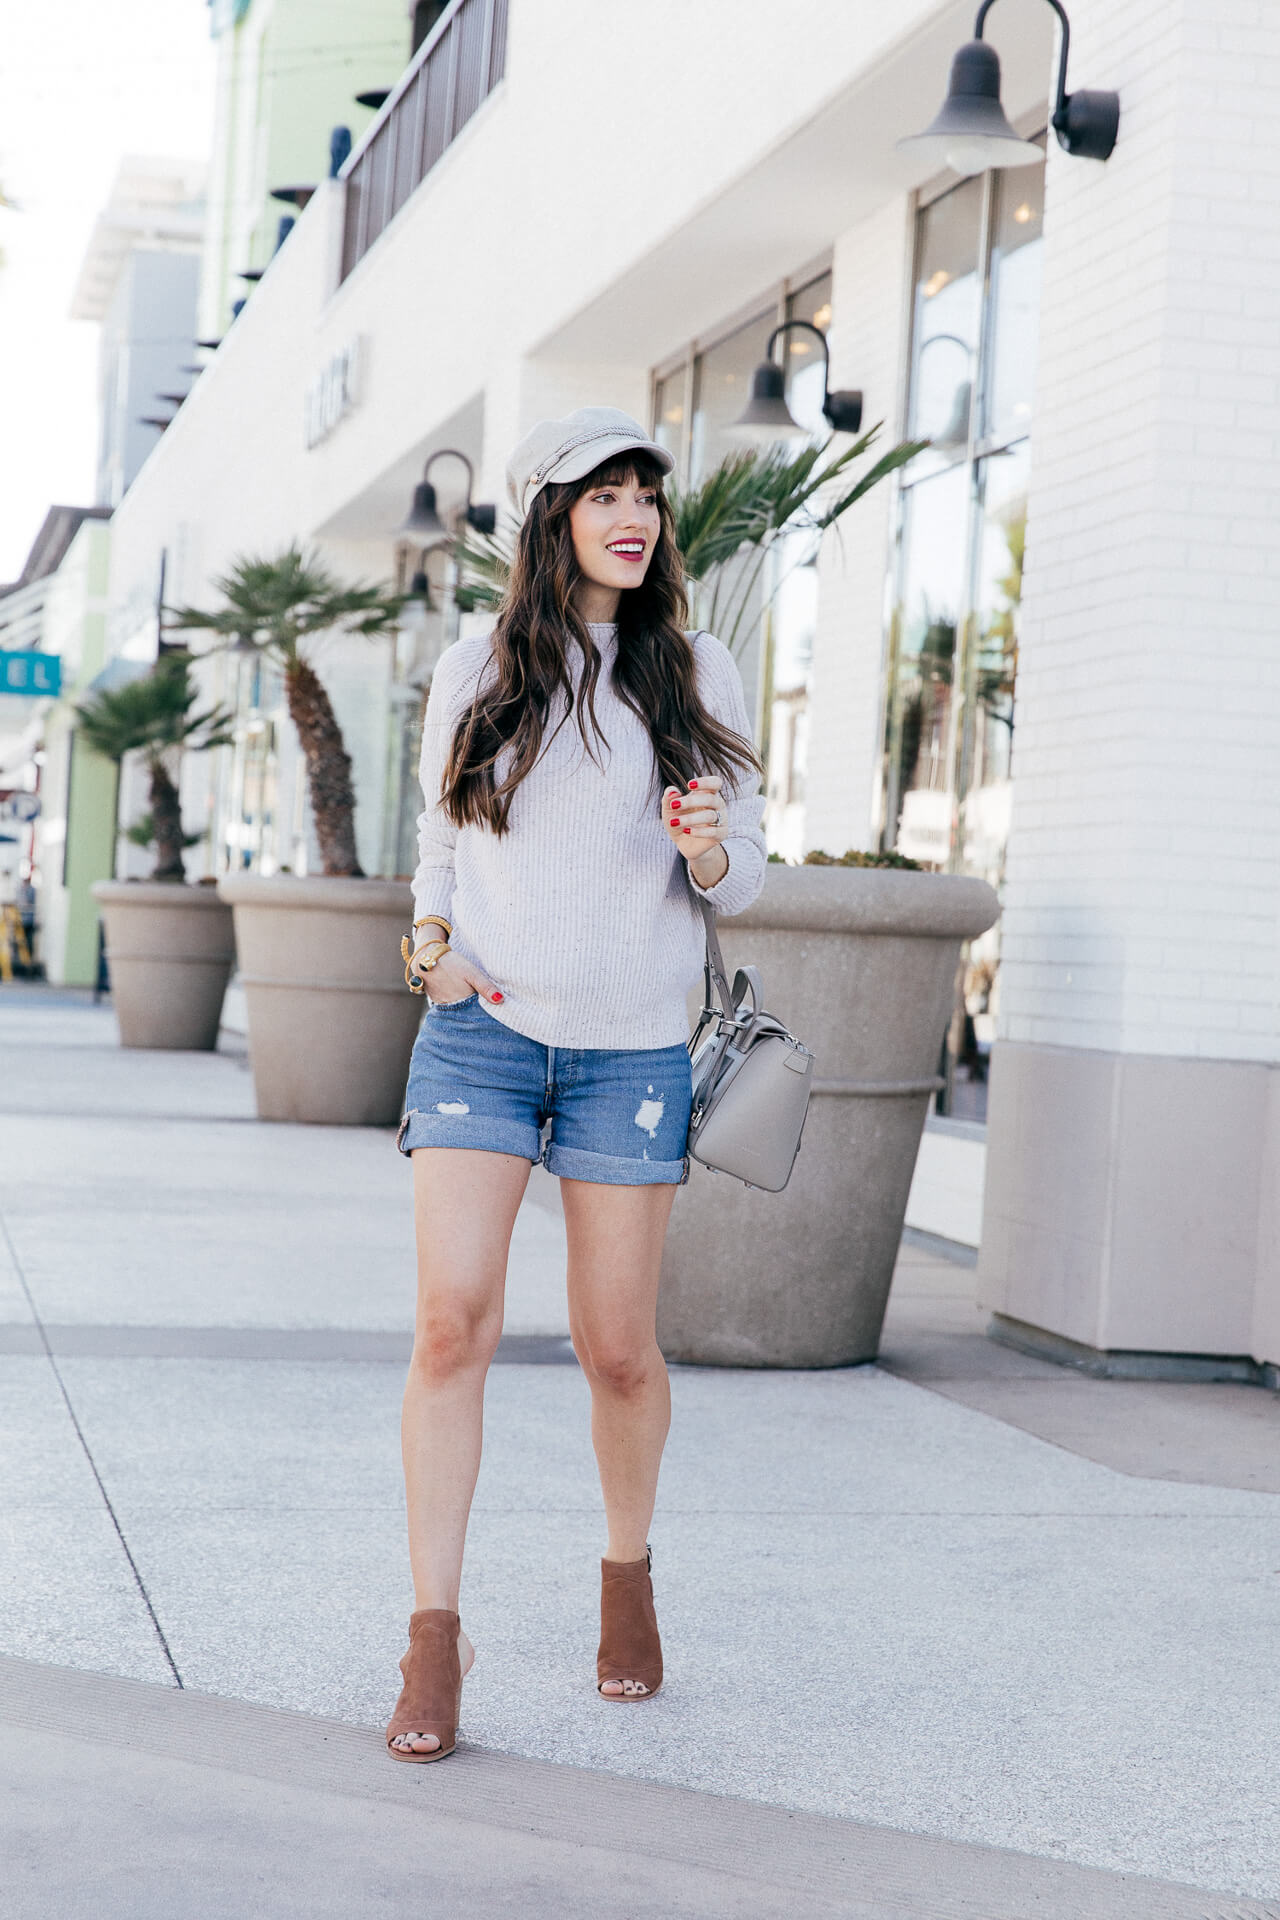 I love this outfit inspired by SoCal in fall! So chic! A cozy sweater plus shorts is a great combo! | M Loves M @marmar